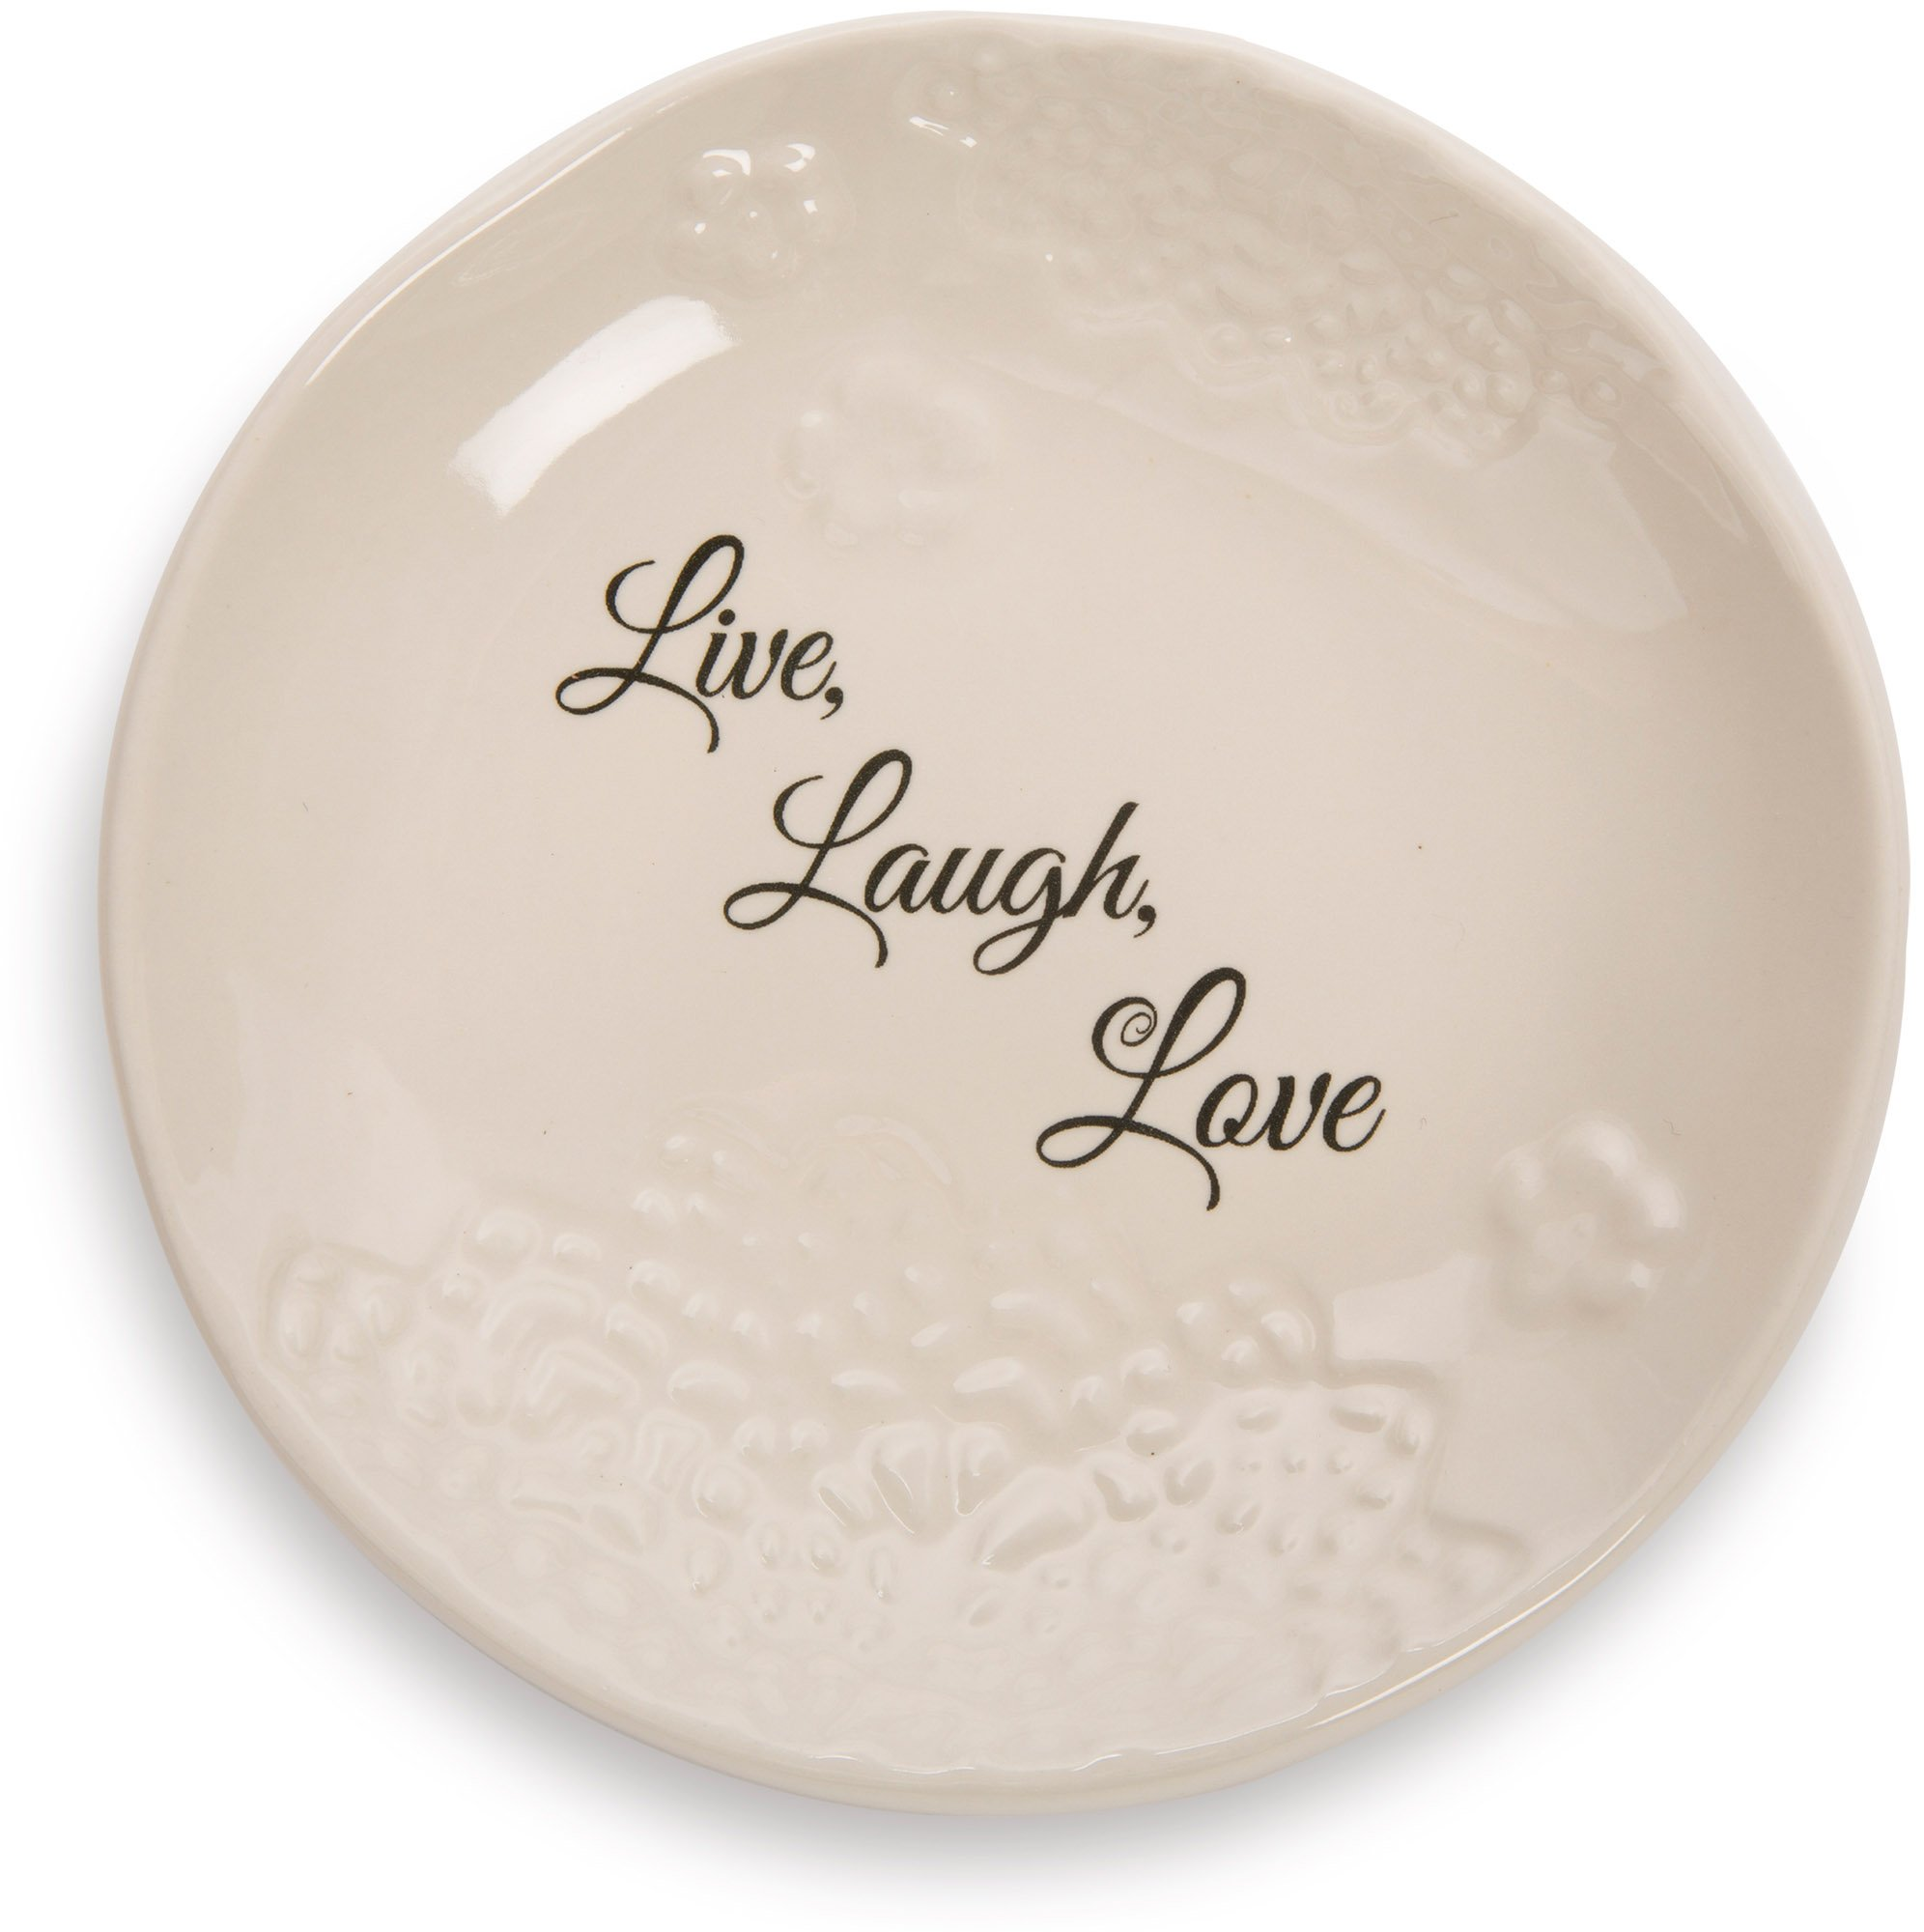 Pavilion Gift Company 19125 Light Your Way Everyday Live Laugh Love Decorative Ceramic Plate, 5''